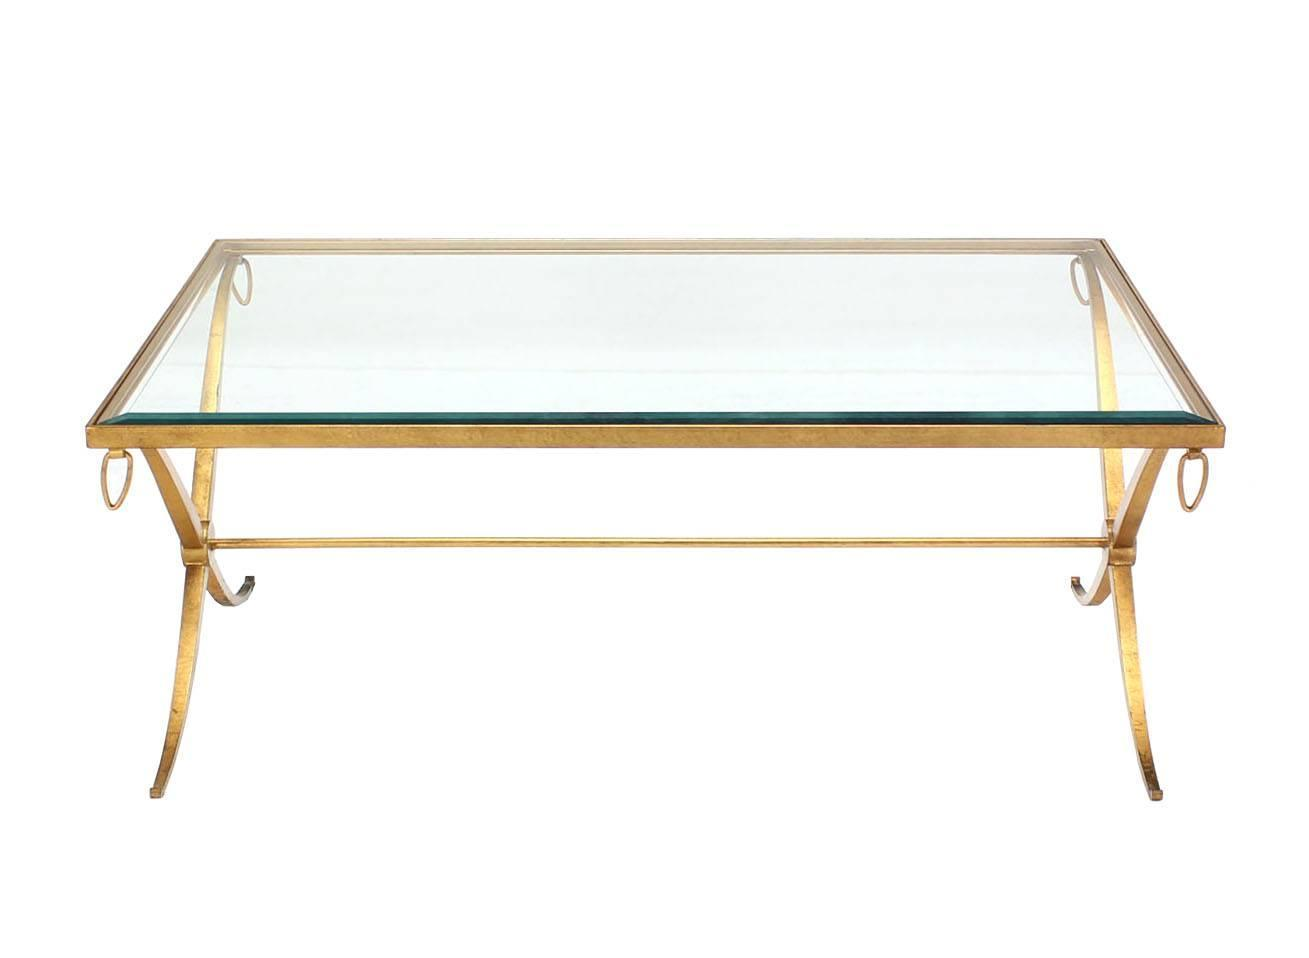 Heavy Gold Gilded Iron X Base Decorator Coffee Table With Glass Top At 1stdibs